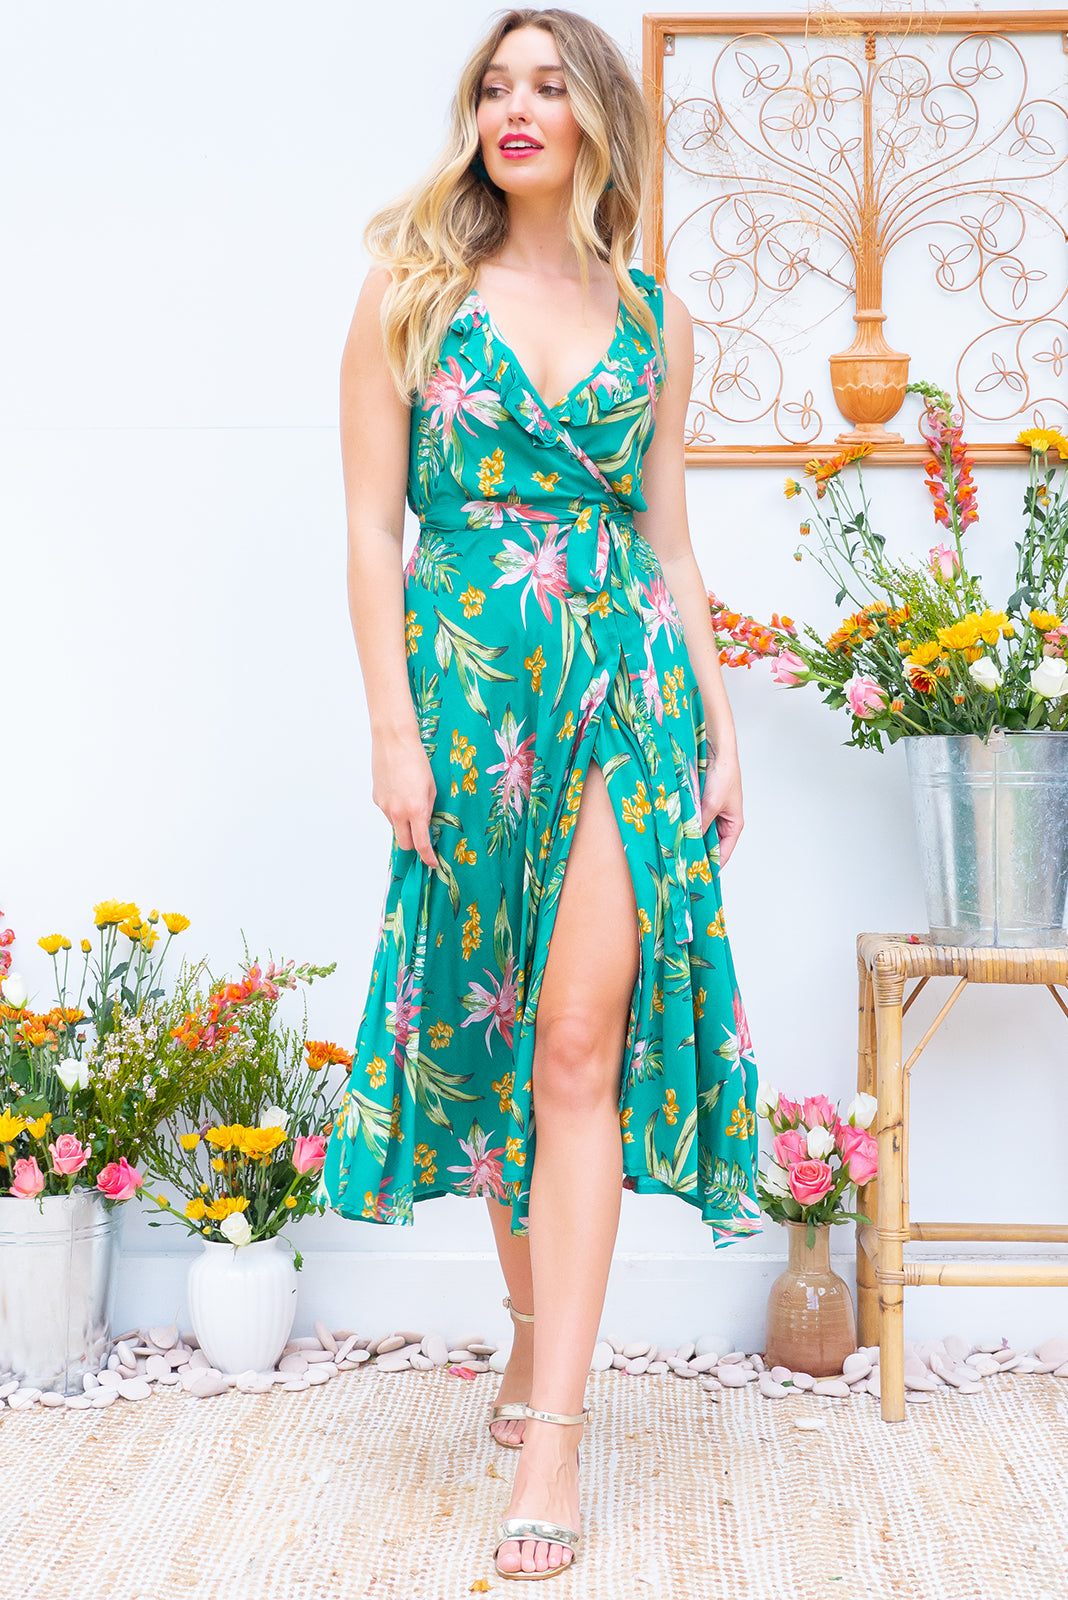 Pablo Daintree Midi Wrap Dress features a flattering wrap around shape, sleeveless bodice with a frill and comes in a strong green with a tropical inspired floral print on 100% rayon